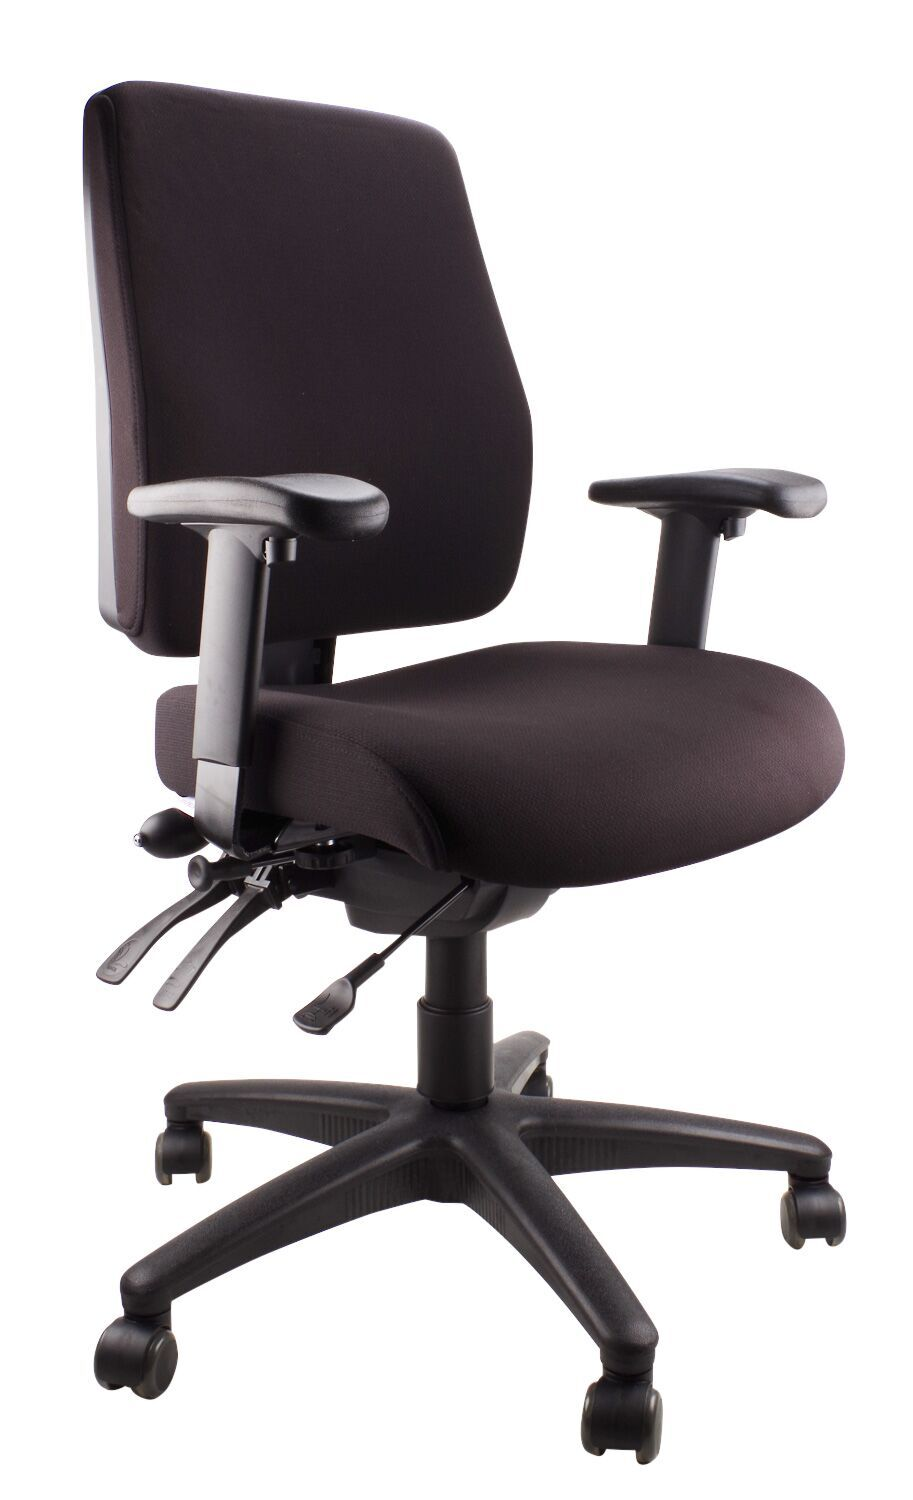 Ergo AIR Fully Ergonomic Chair with Lumbar Pump Adjustment